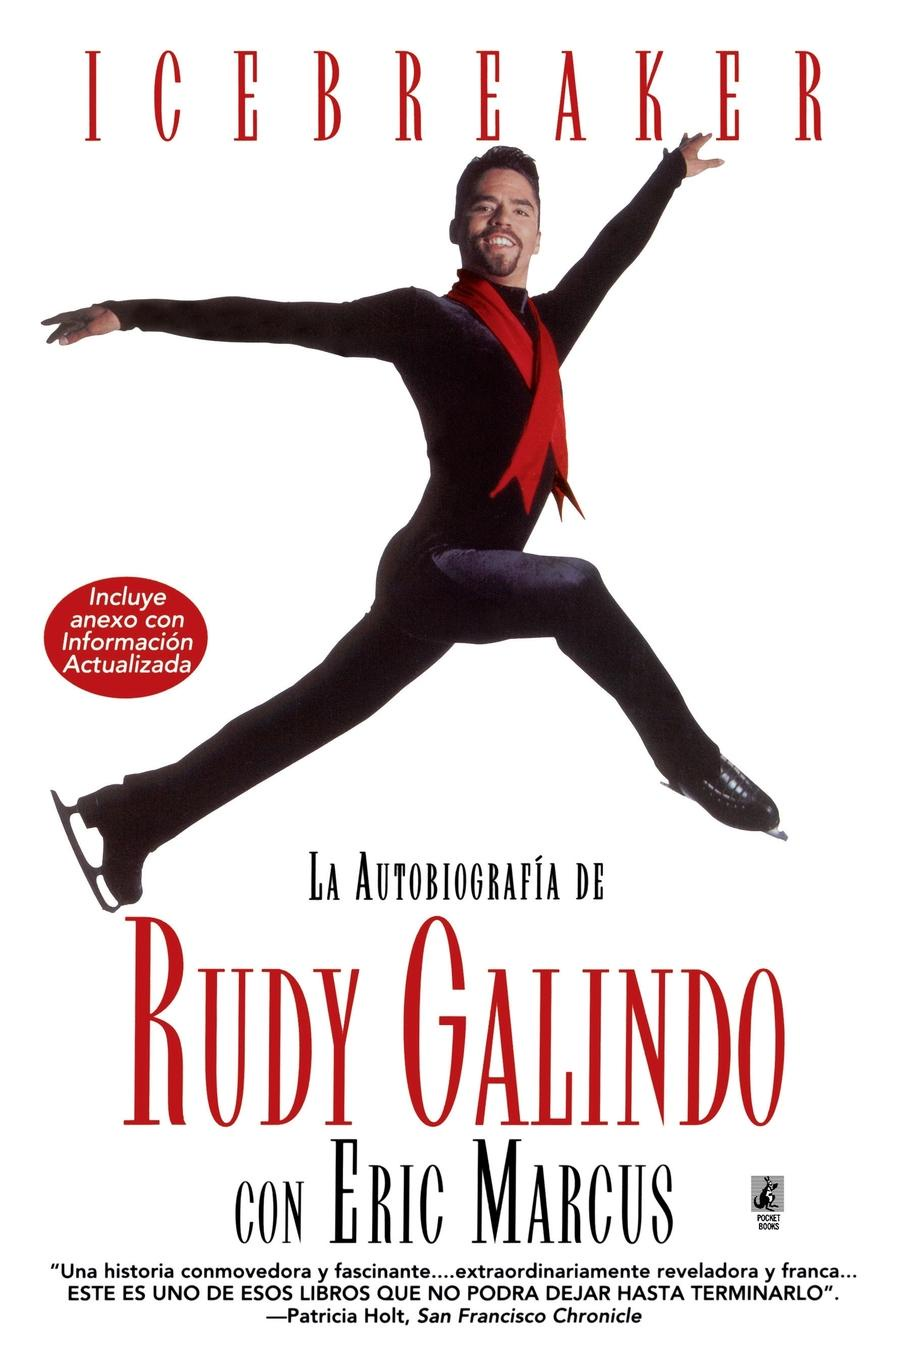 Rudy Galindo Icebreaker Spanish Edition The Autobiography of